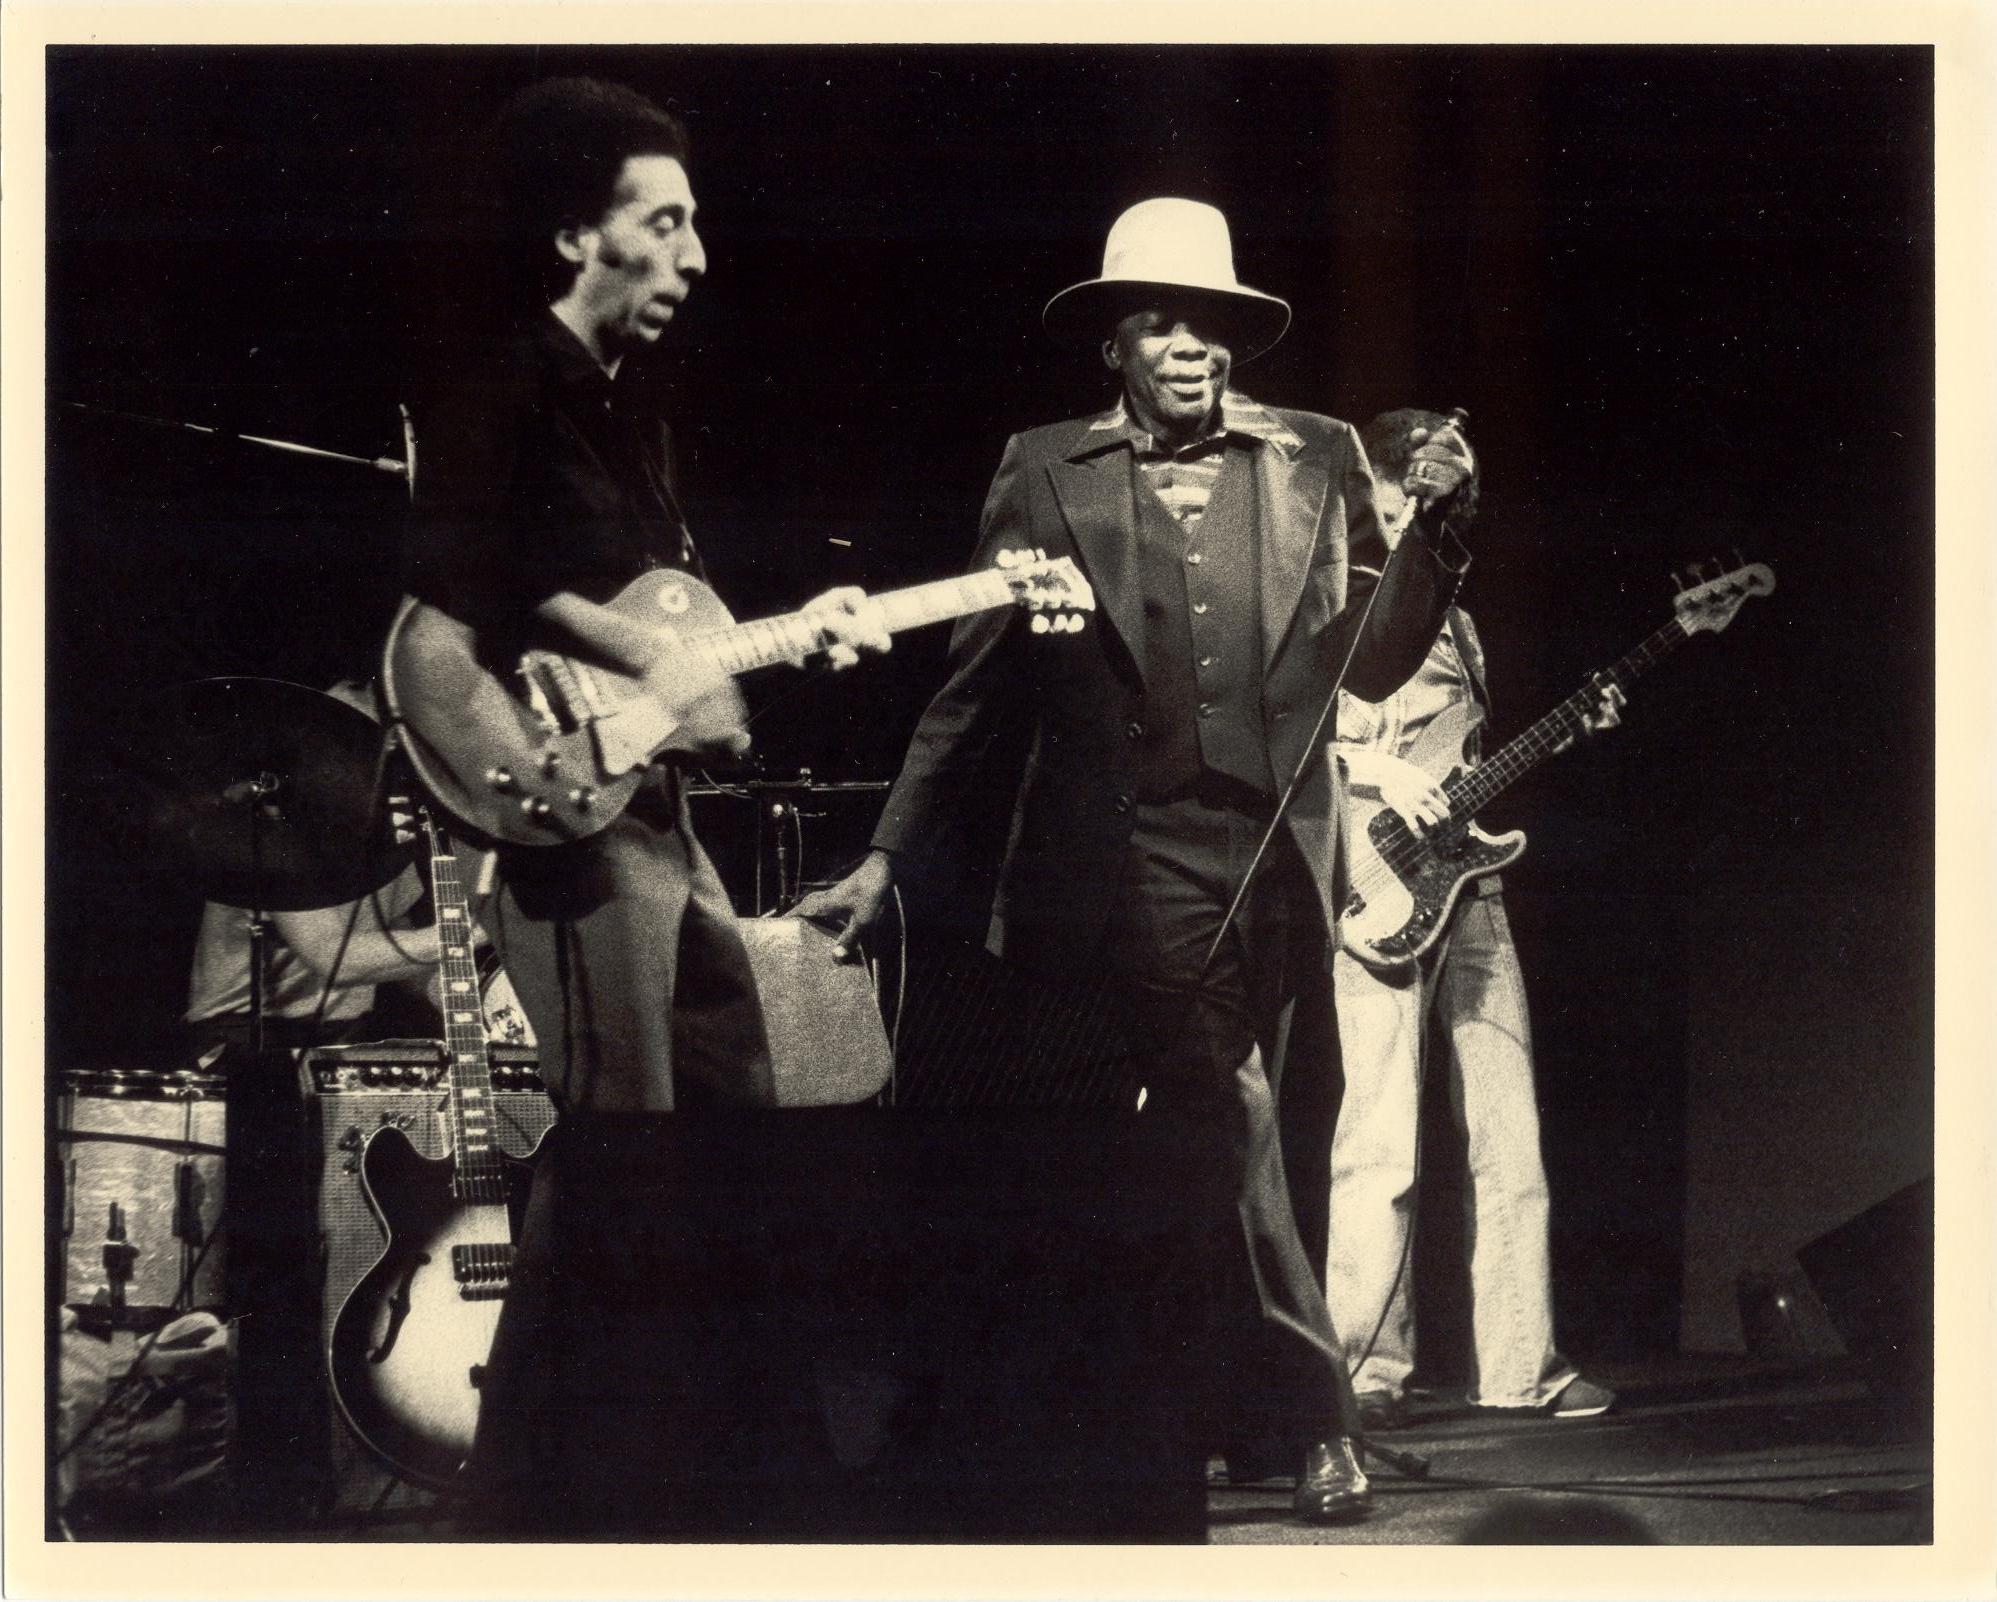 John García performing with John Lee Hooker.